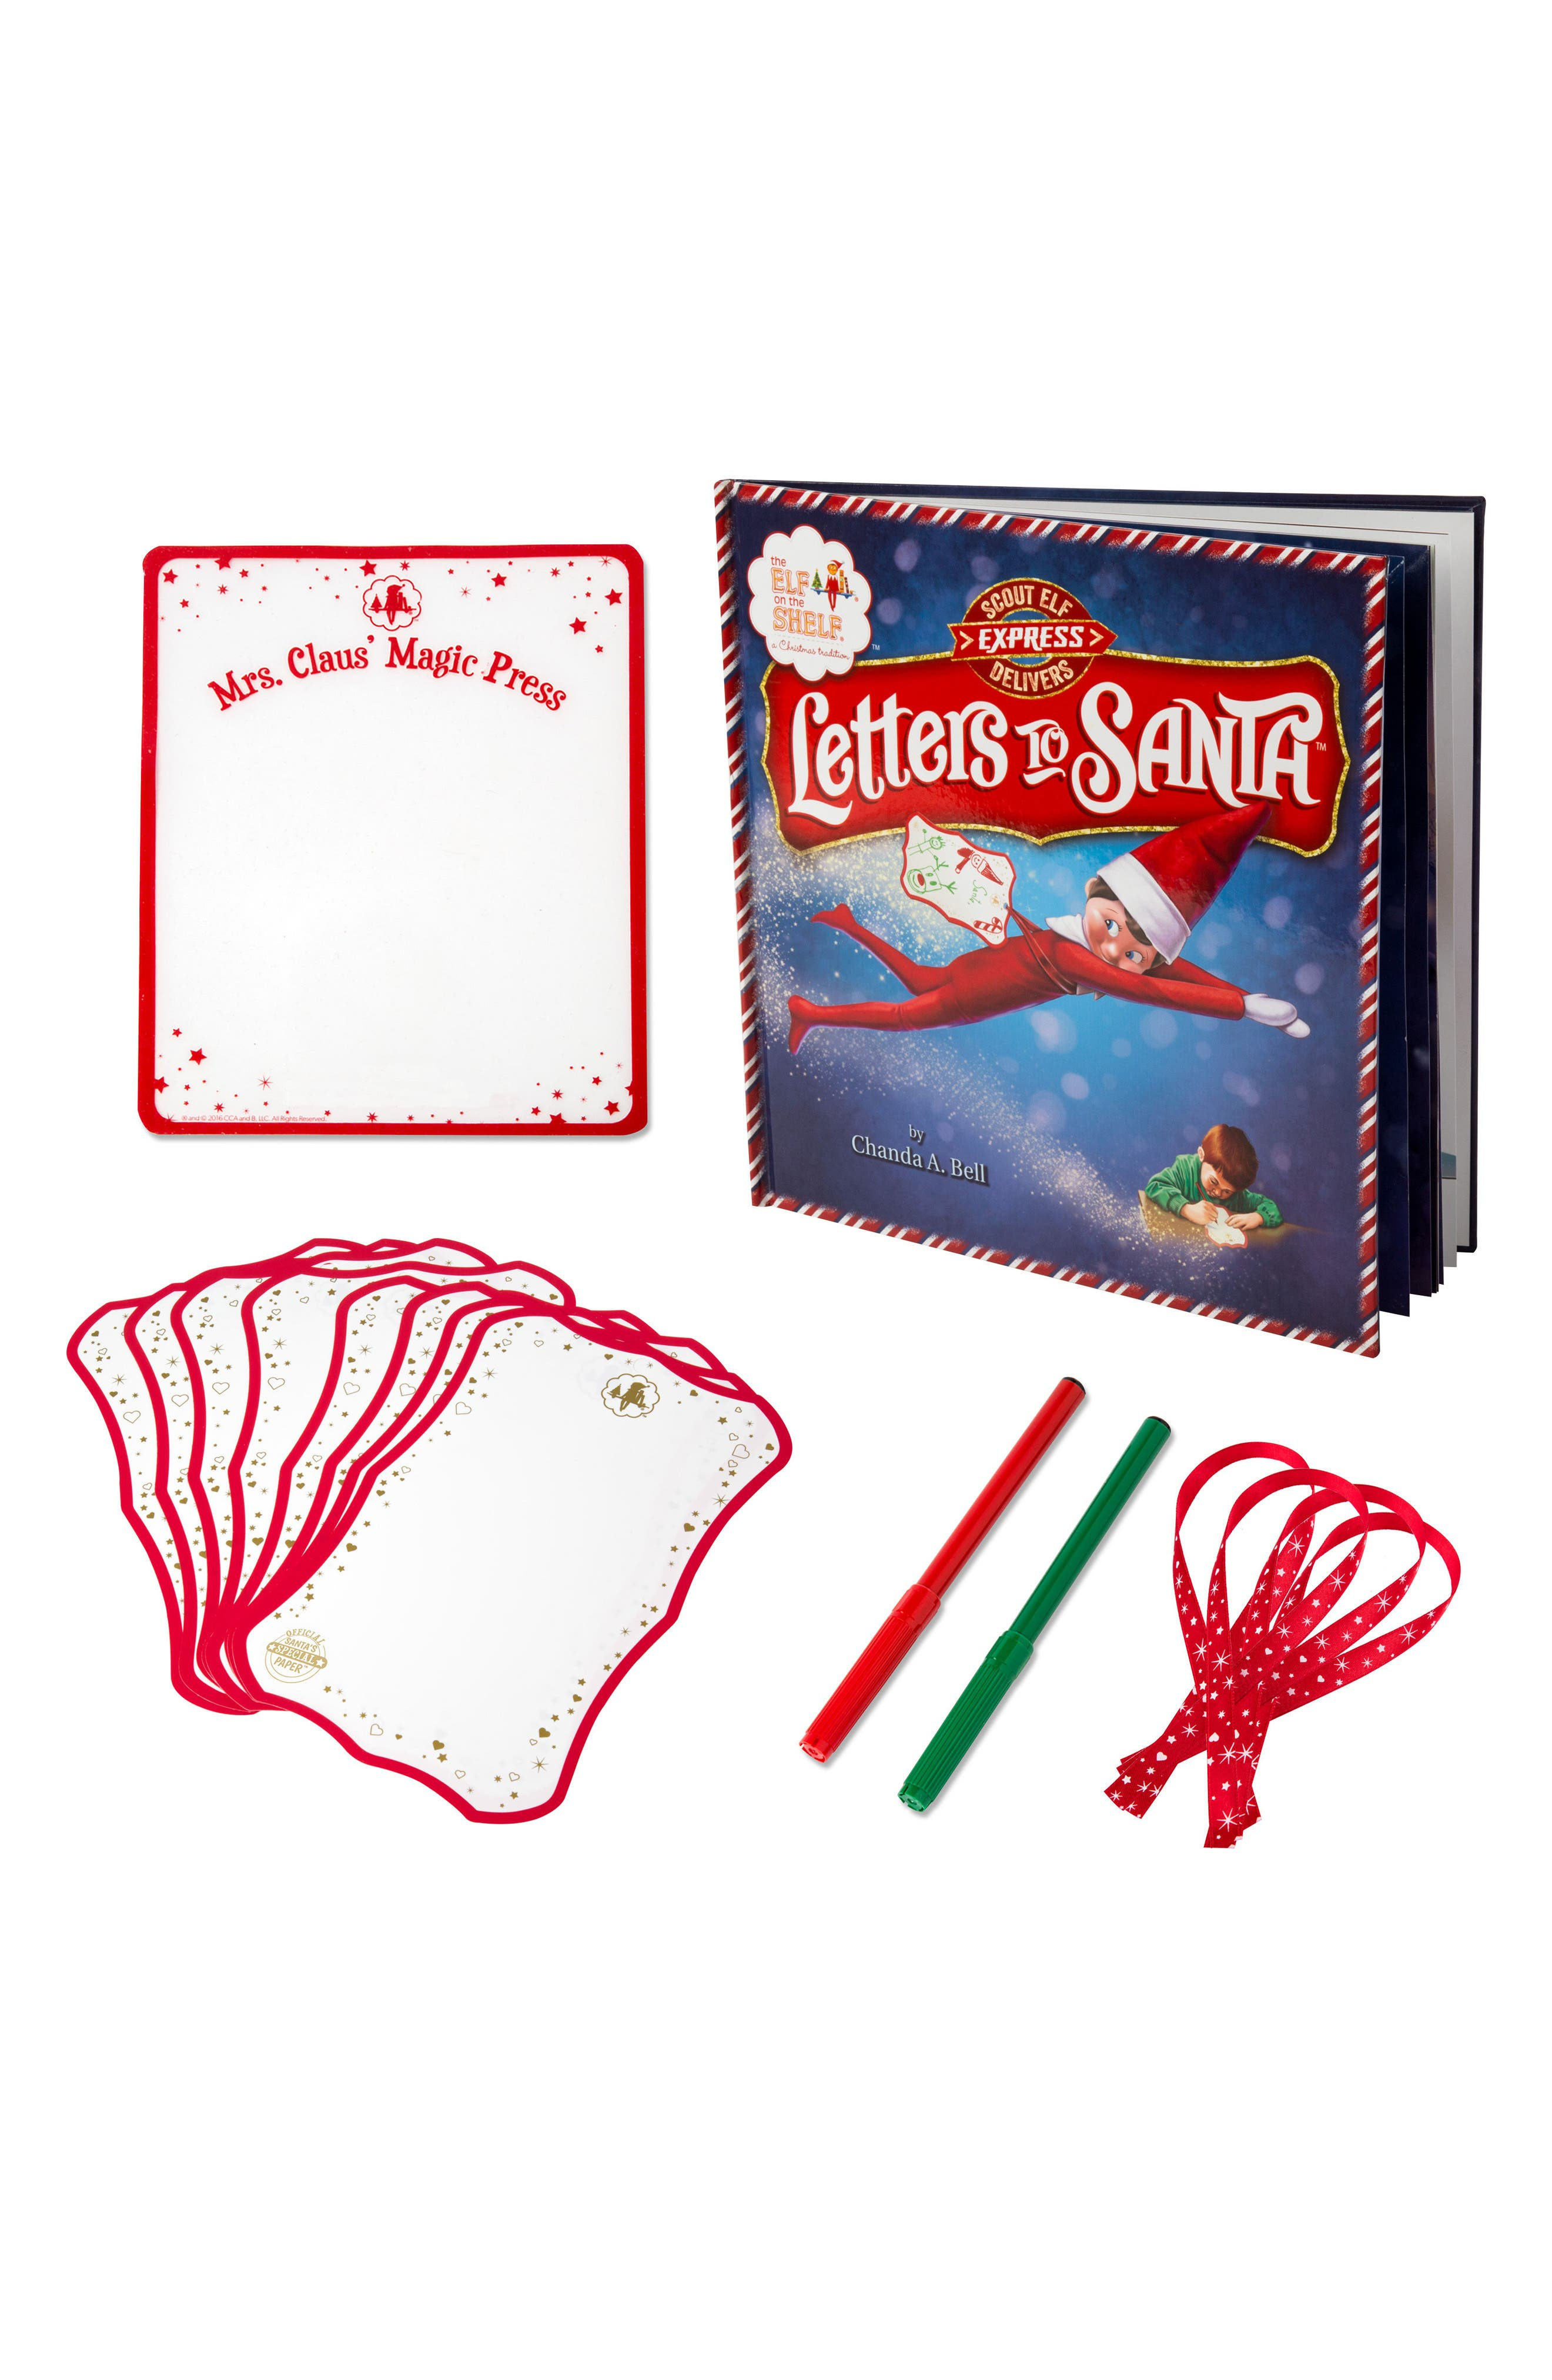 'Scout Elf Express Delivers Letters to Santa' Elf on the Shelf Book & 22-Piece Set